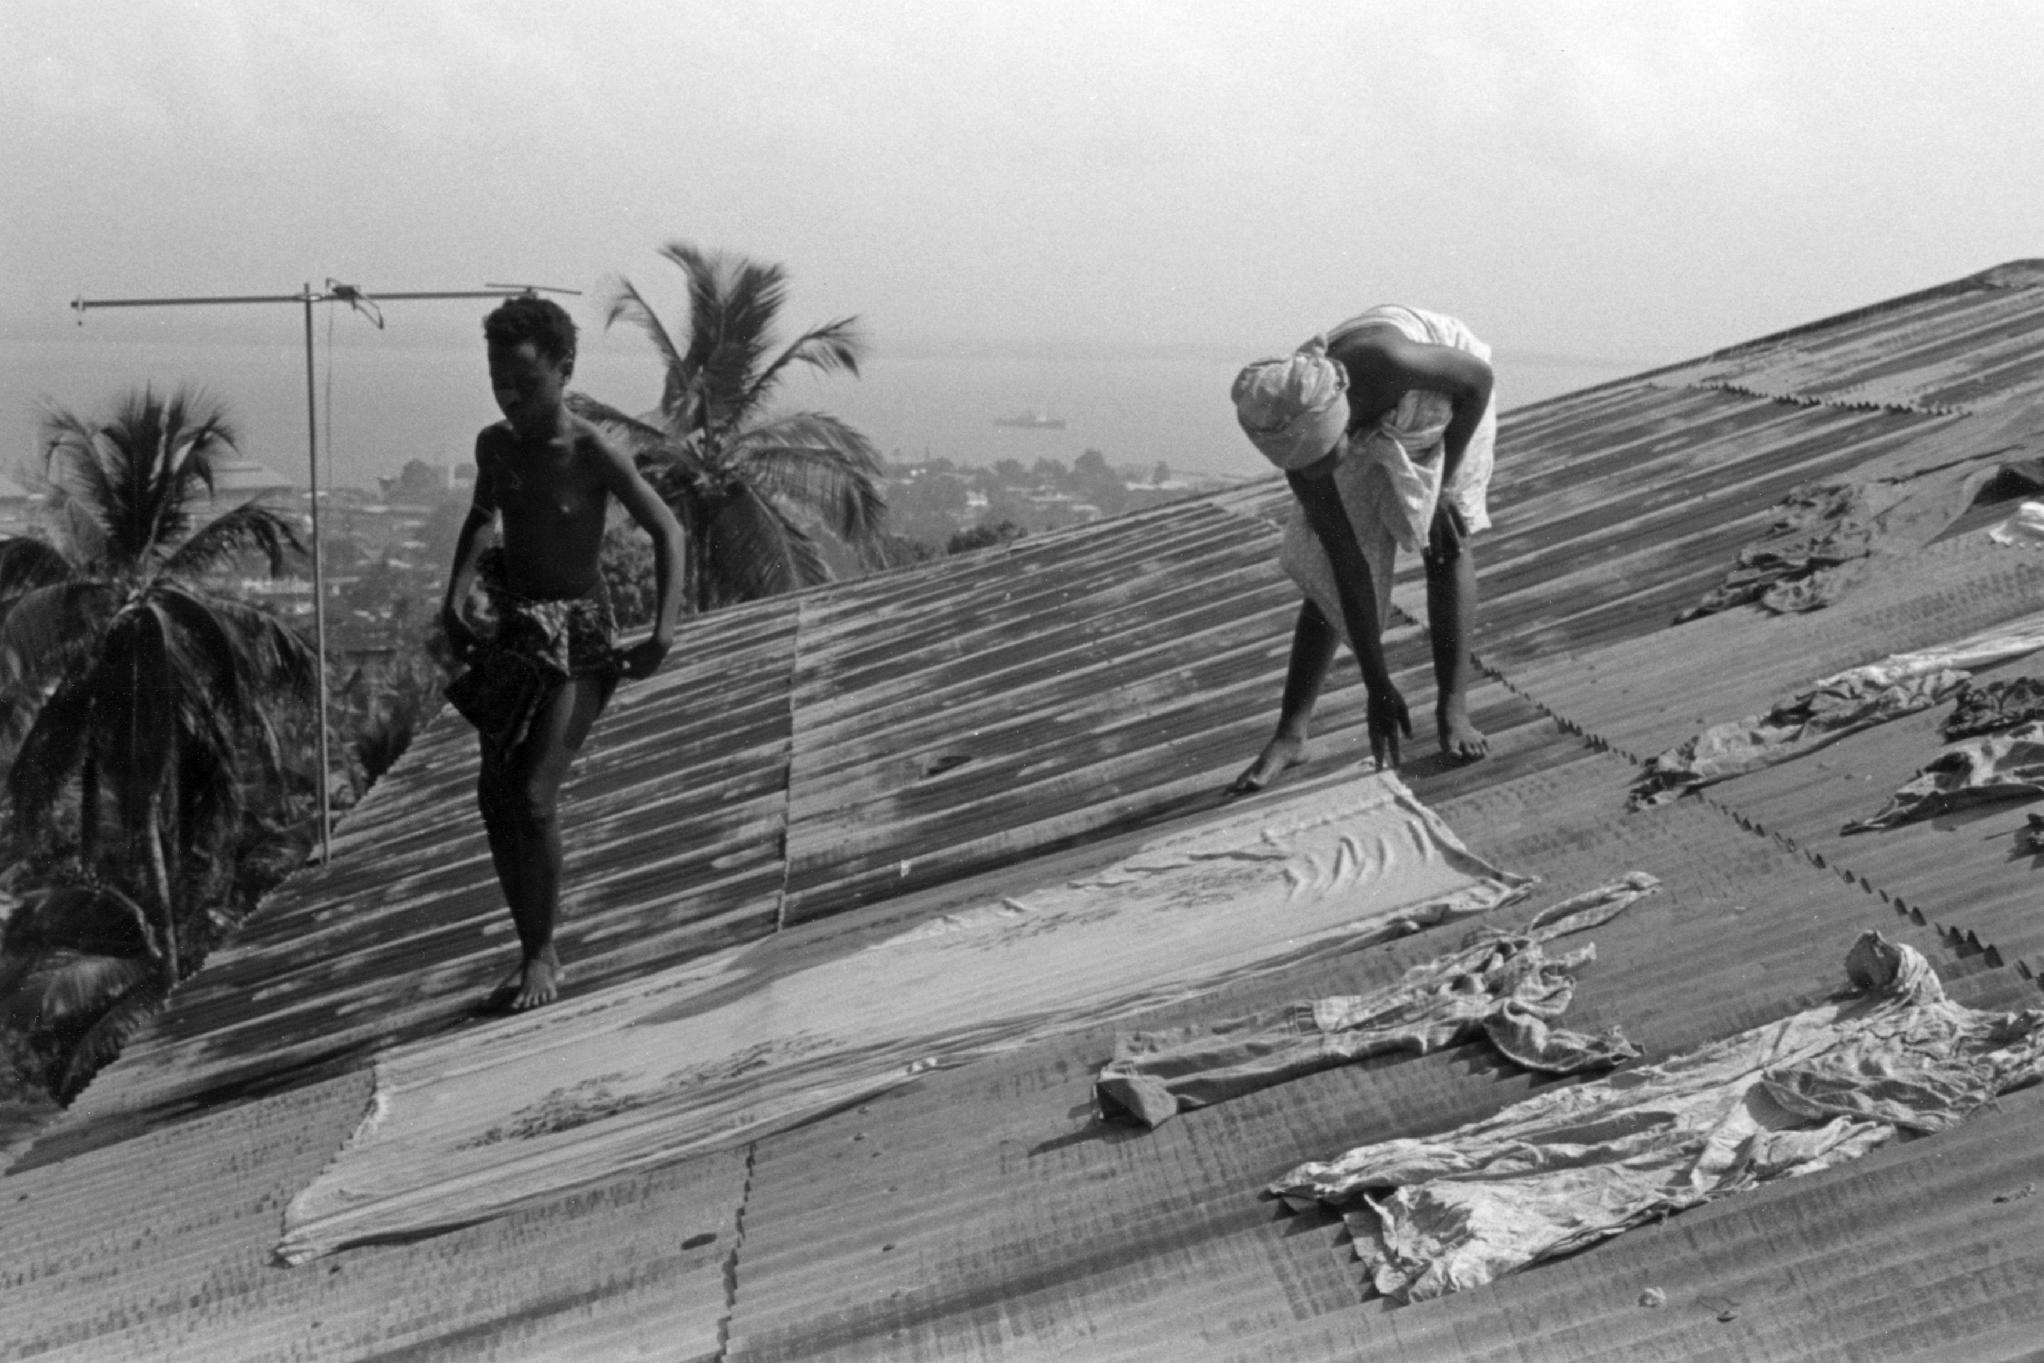 Drying Laundry on Rooftops in Residential Freetown